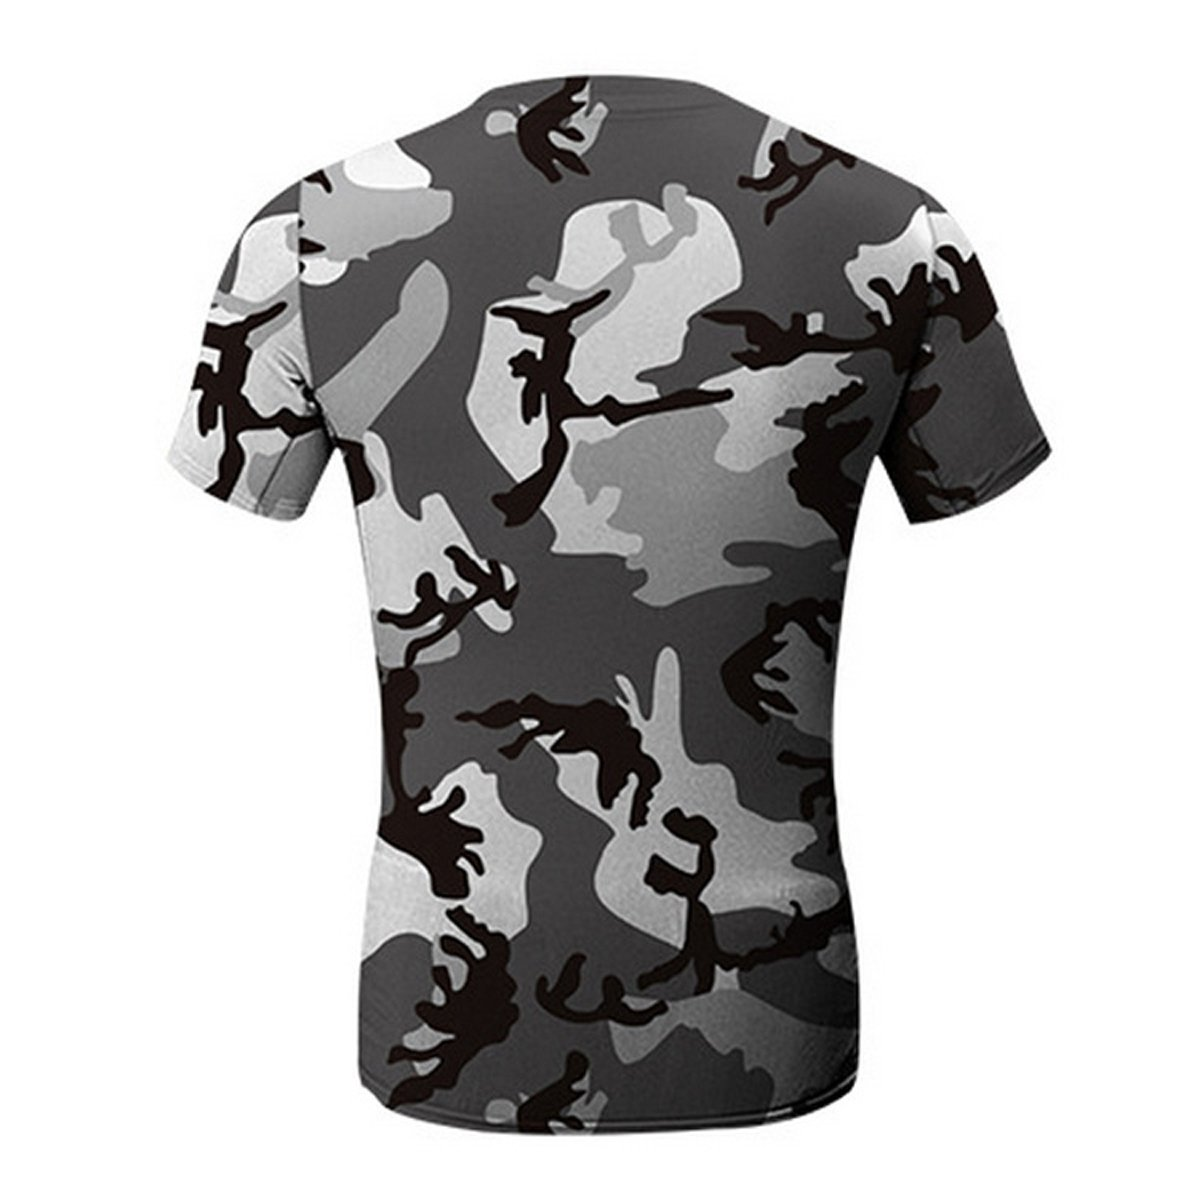 Allywit Men Blouse,Funny Men Printing 3D Skull Shirt Short Sleeve T Shirt Blouse